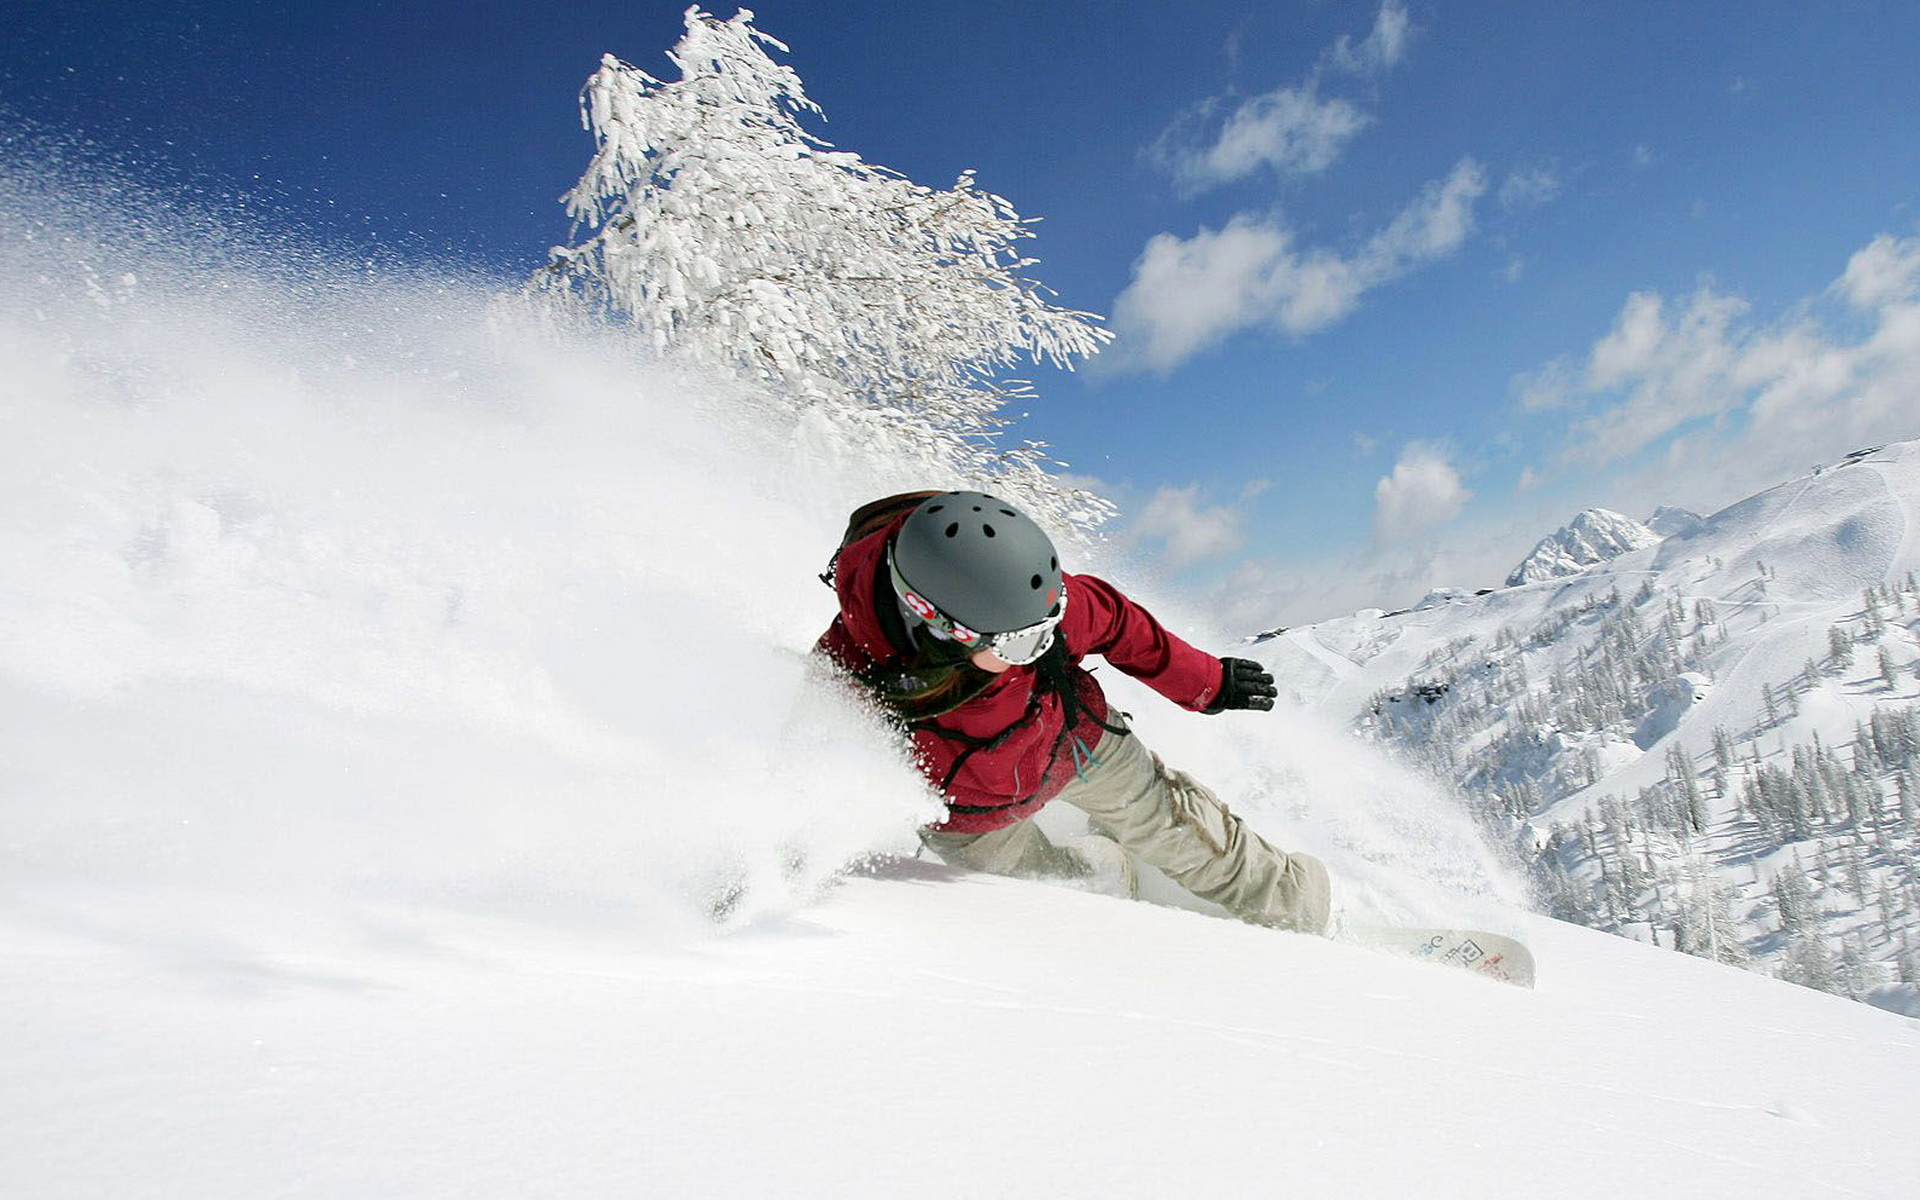 Snowboard Wallpapers And Download Wallpapers Pictures